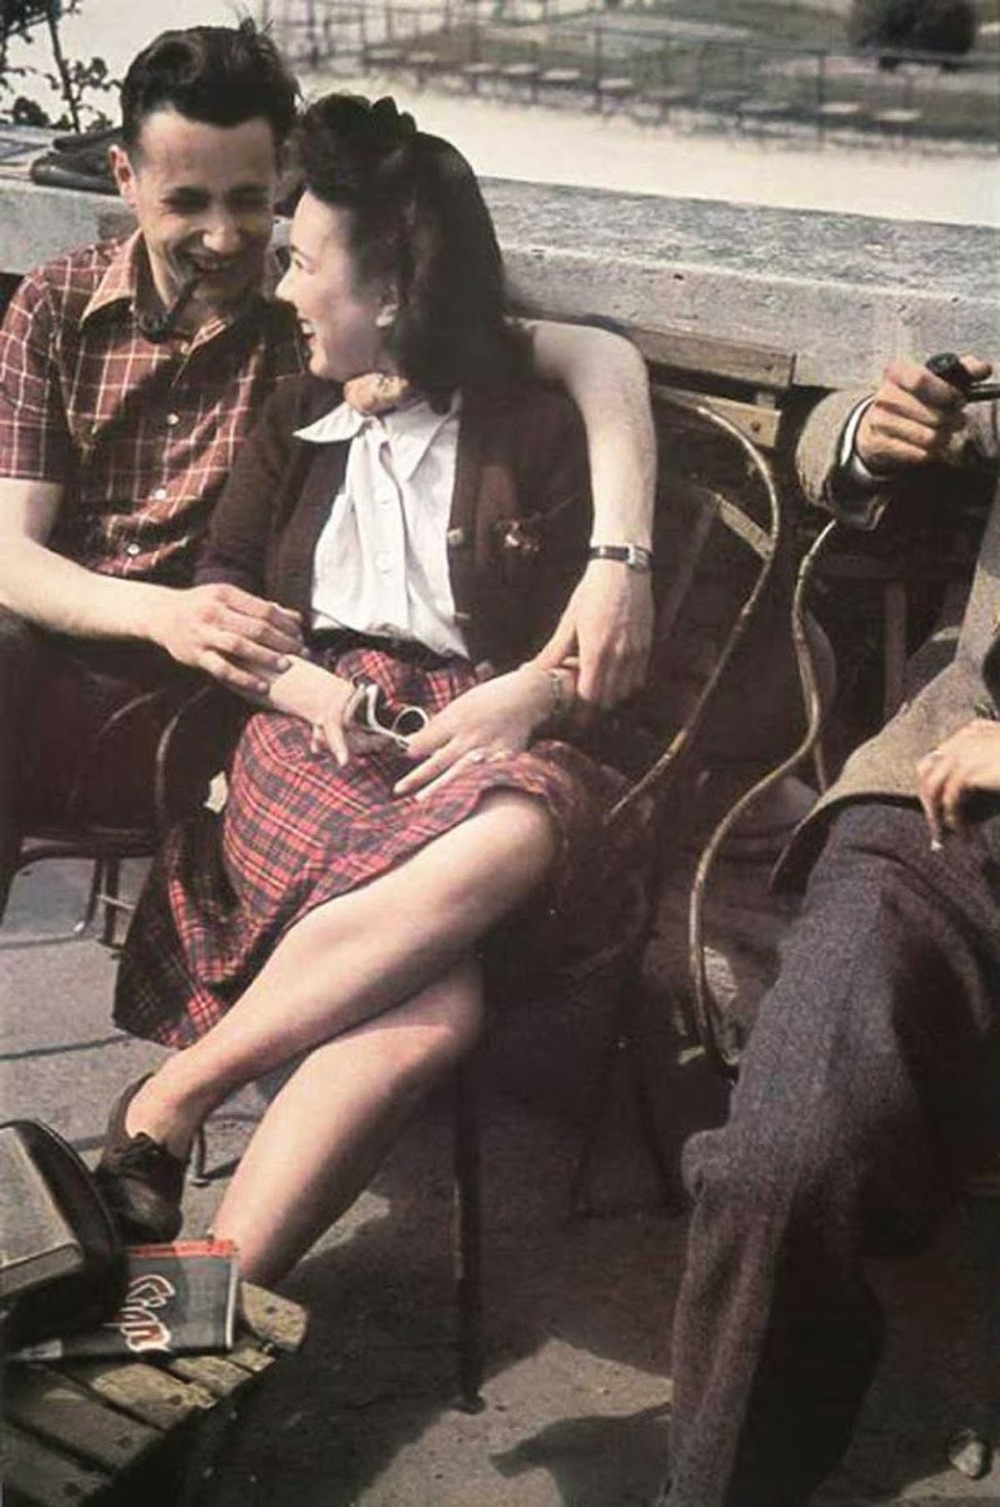 Parisian Women from between 1930s and 1940s (7).jpg